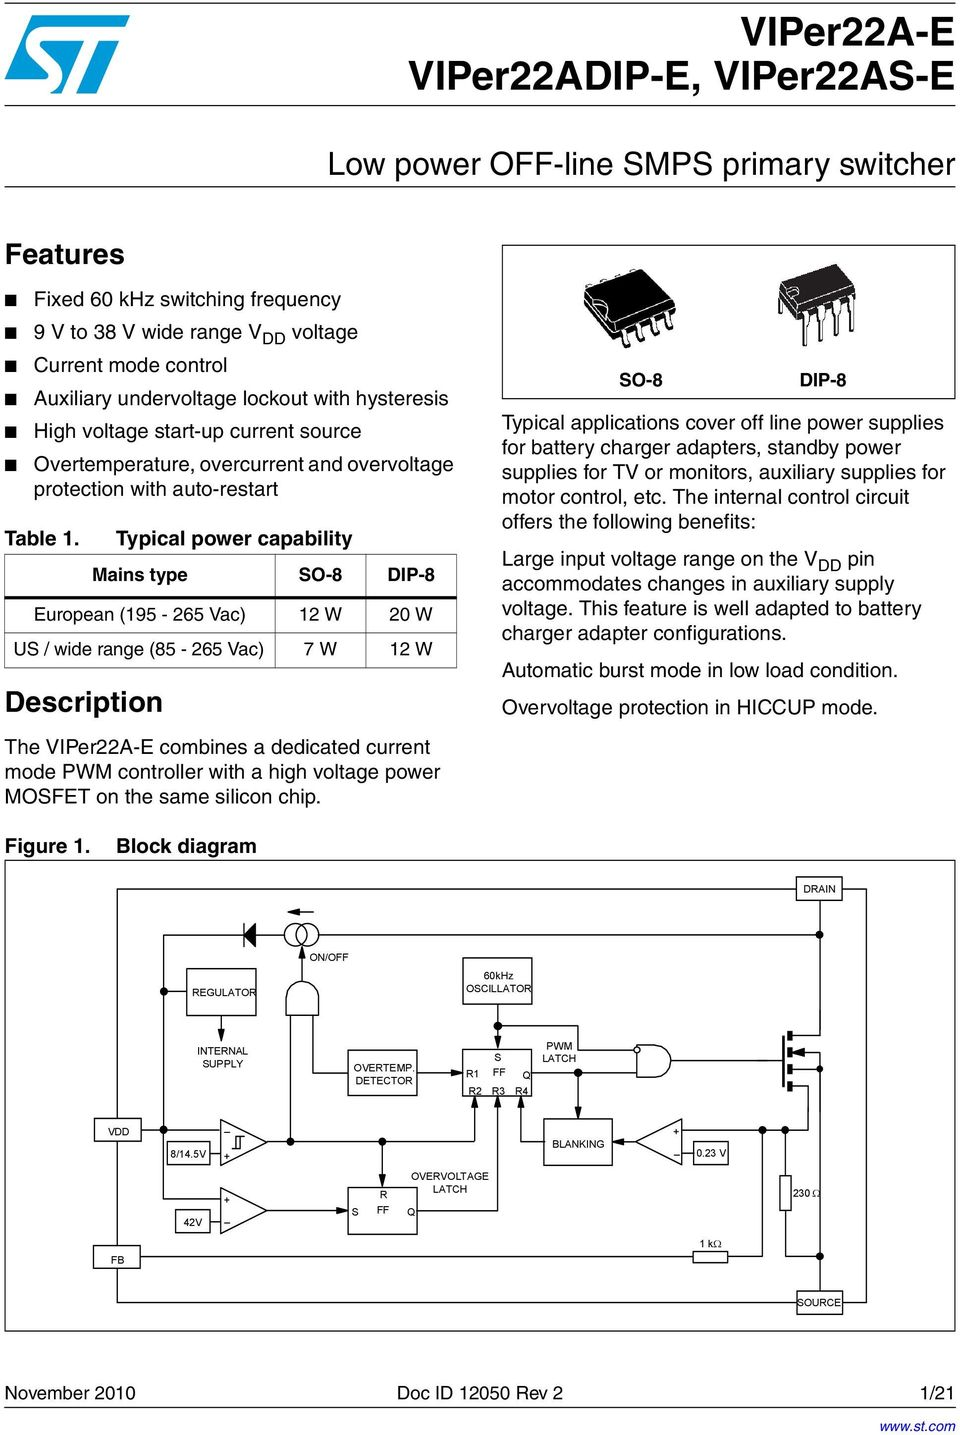 Lm317 Low Dropout Regulator 5v 2a Using Tip41 Power Supply Lm2991 Drop Typical Application Circuit Diagram And Datasheet Description Capability Mains Type So 8 Dip European 195 12v Smps